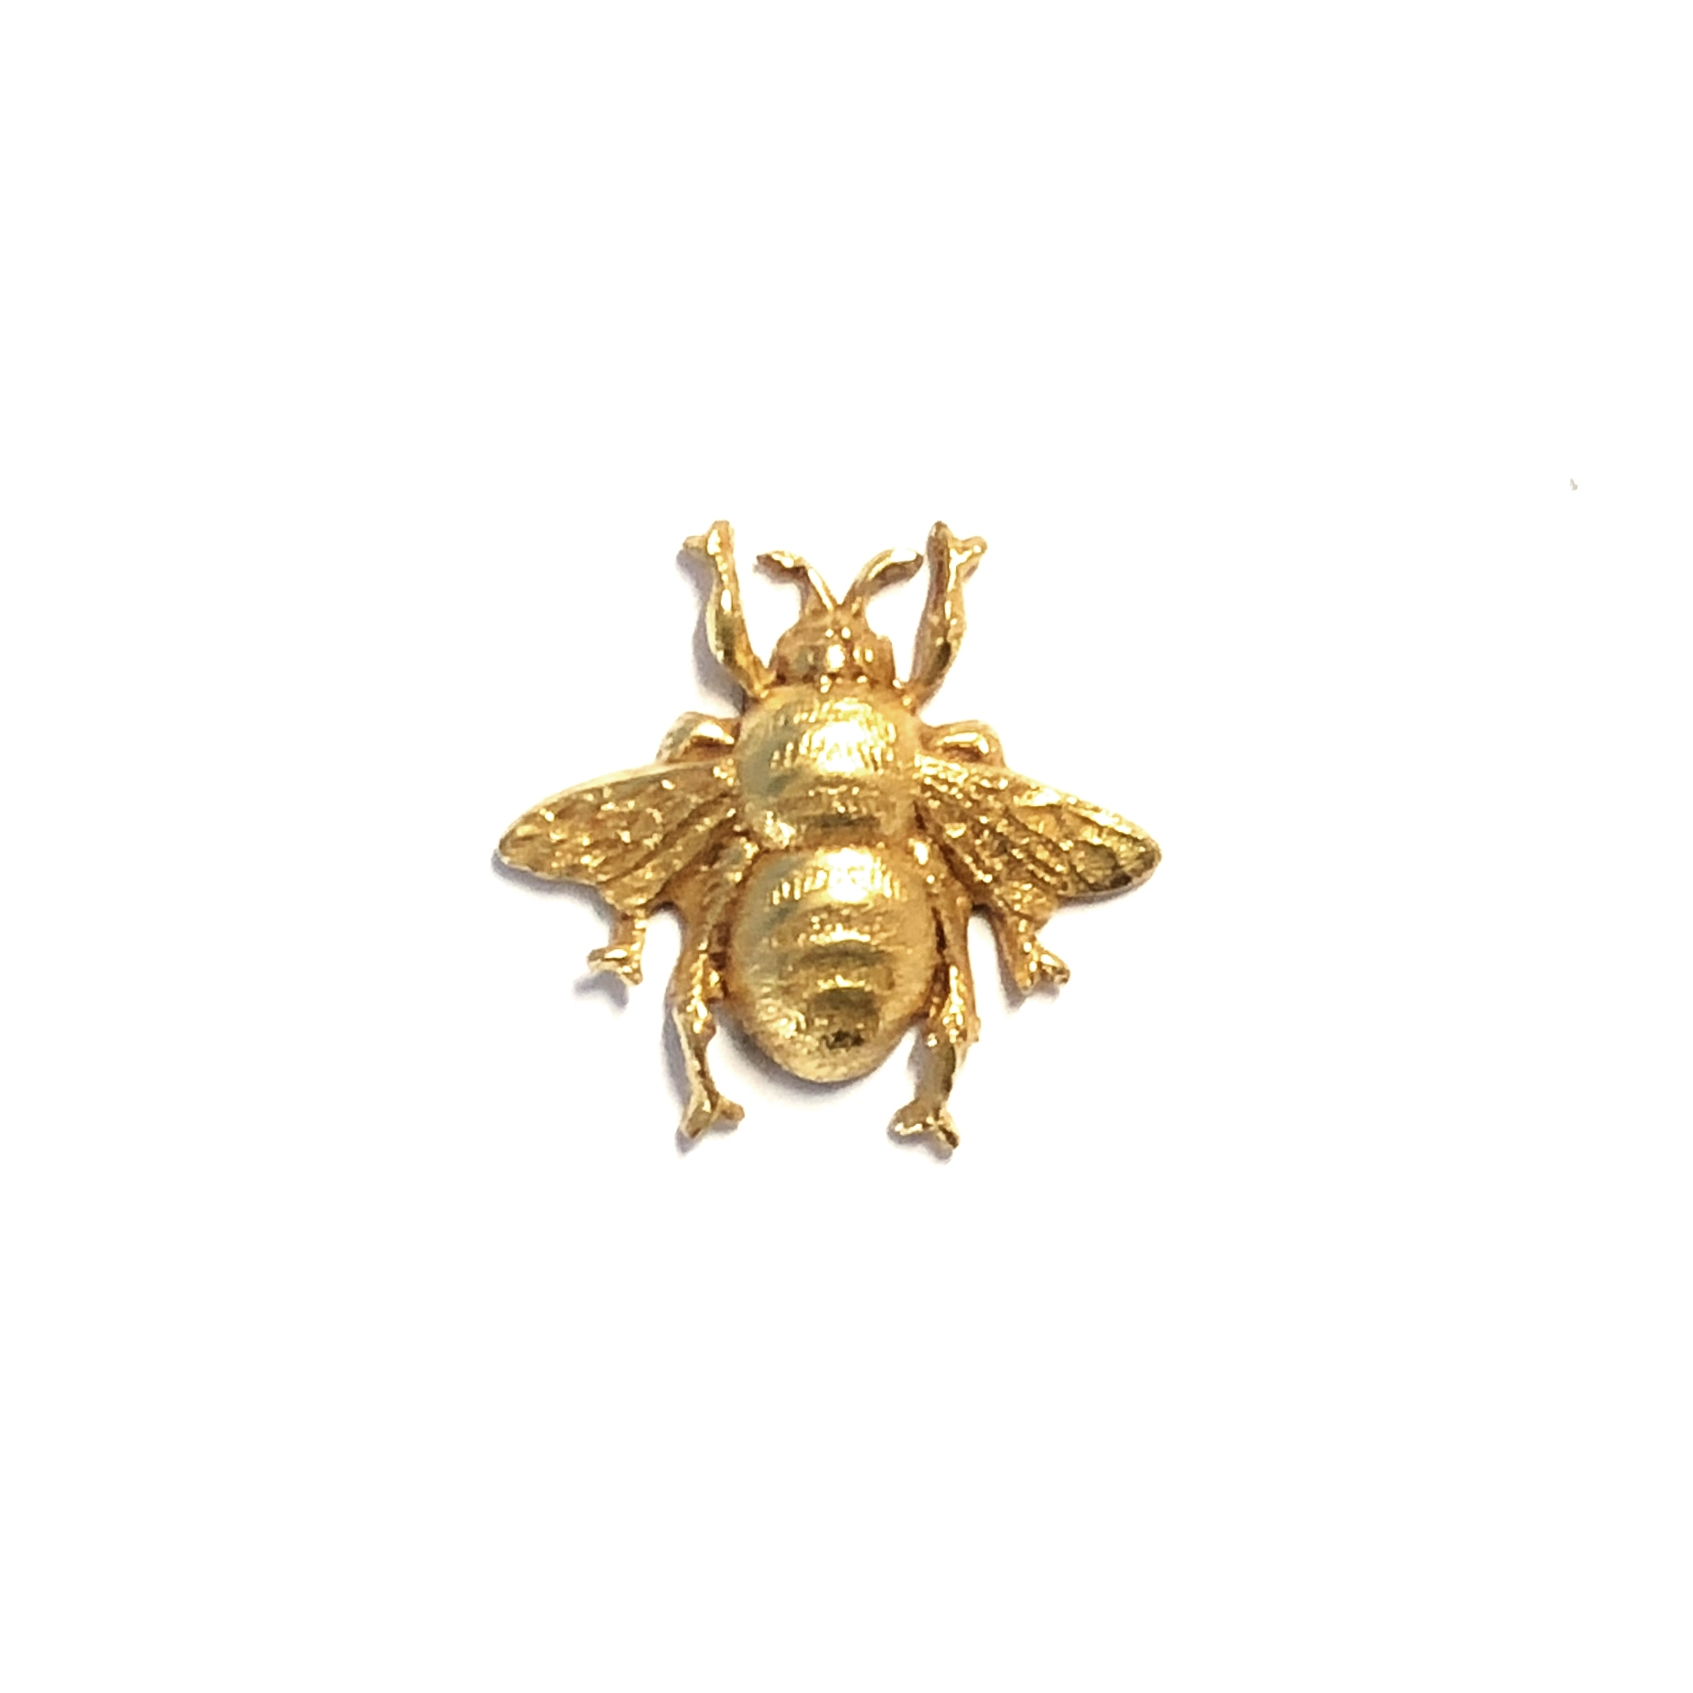 brass bees, bumble bees, classic gold, 05040, brass stampings, antique gold, jewelry making supplies, vintage jewelry supplies, US made, nickel free, bsue boutiqes, brass jewelry parts, brass insects